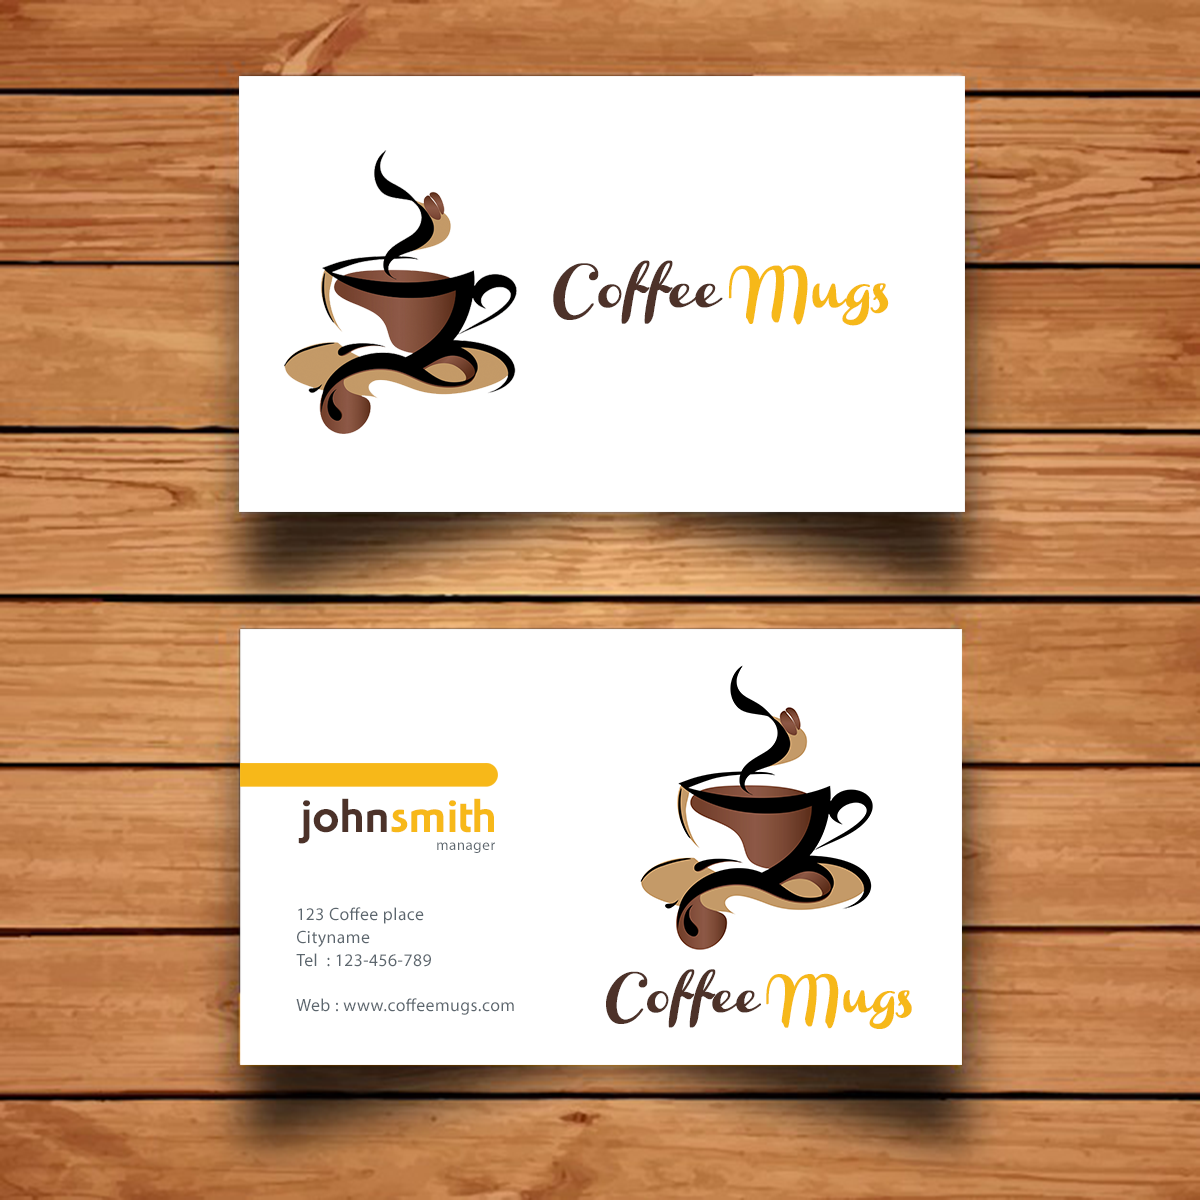 Creative designs idea free creative ideas for designers tag coffee mugs visiting card designs visiting card design sample personal visiting card visiting card models visiting card sample visiting card wajeb